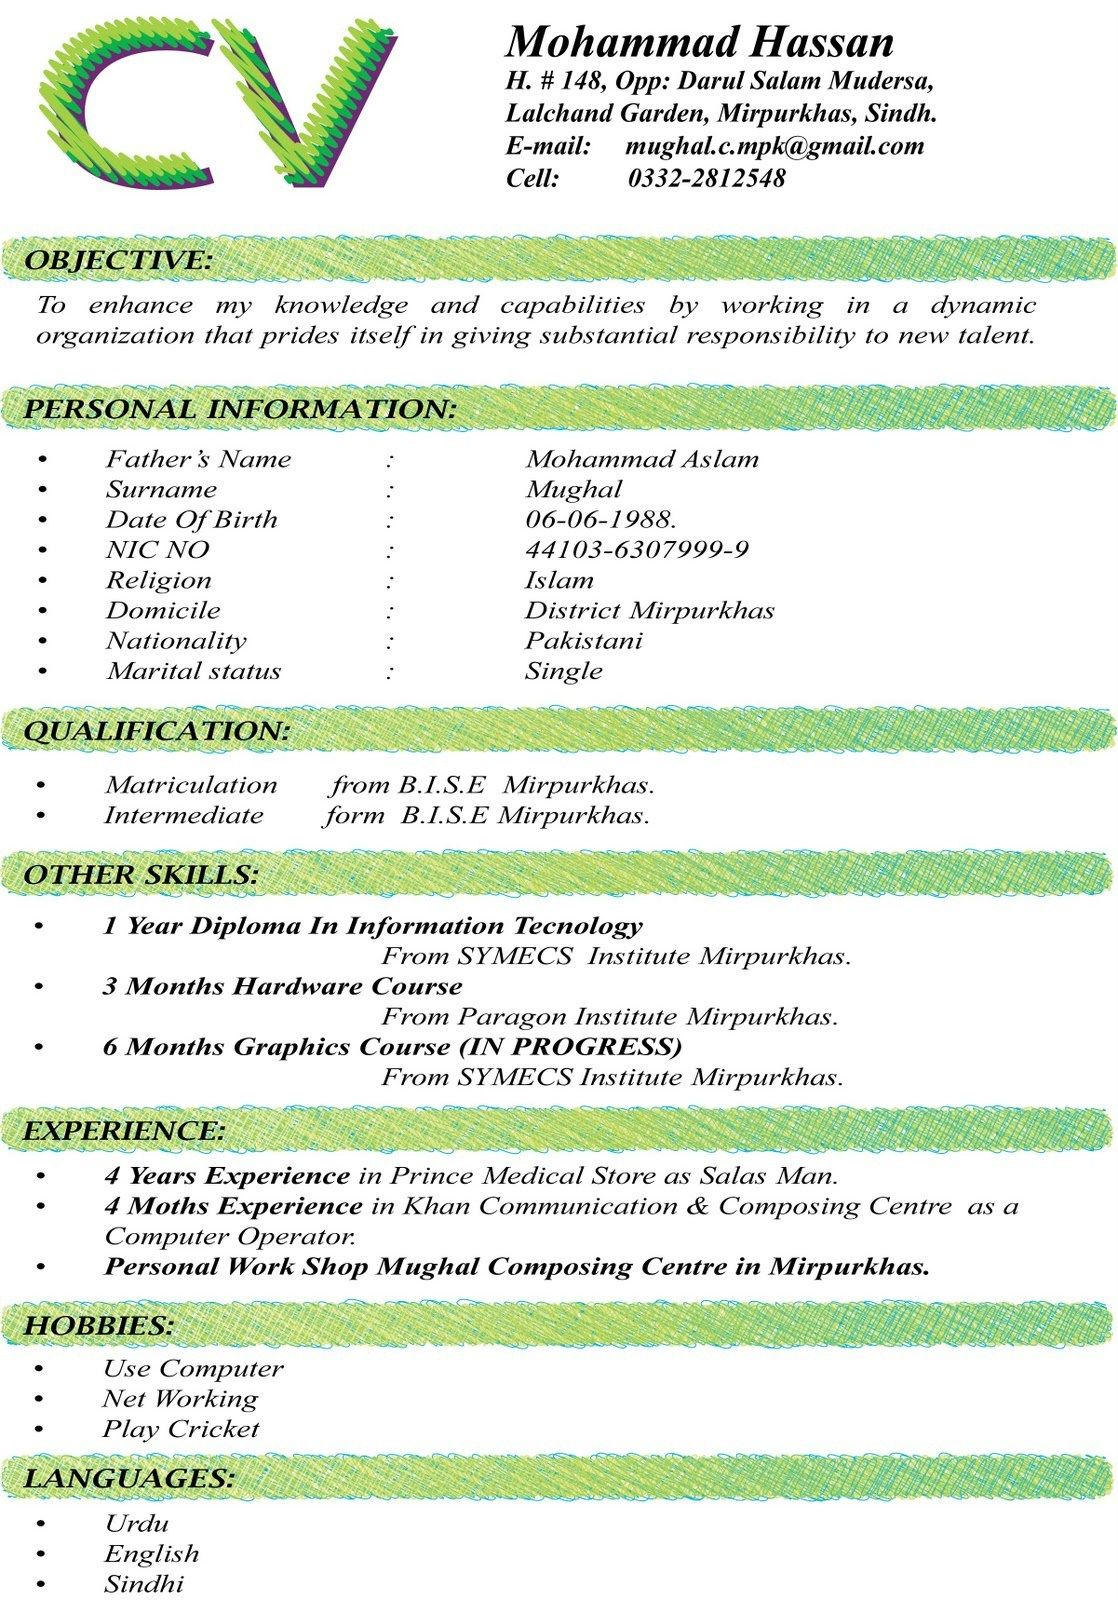 Resume Template Download Free Cv Format To Download Free Cv Templates Download Cv Format Format